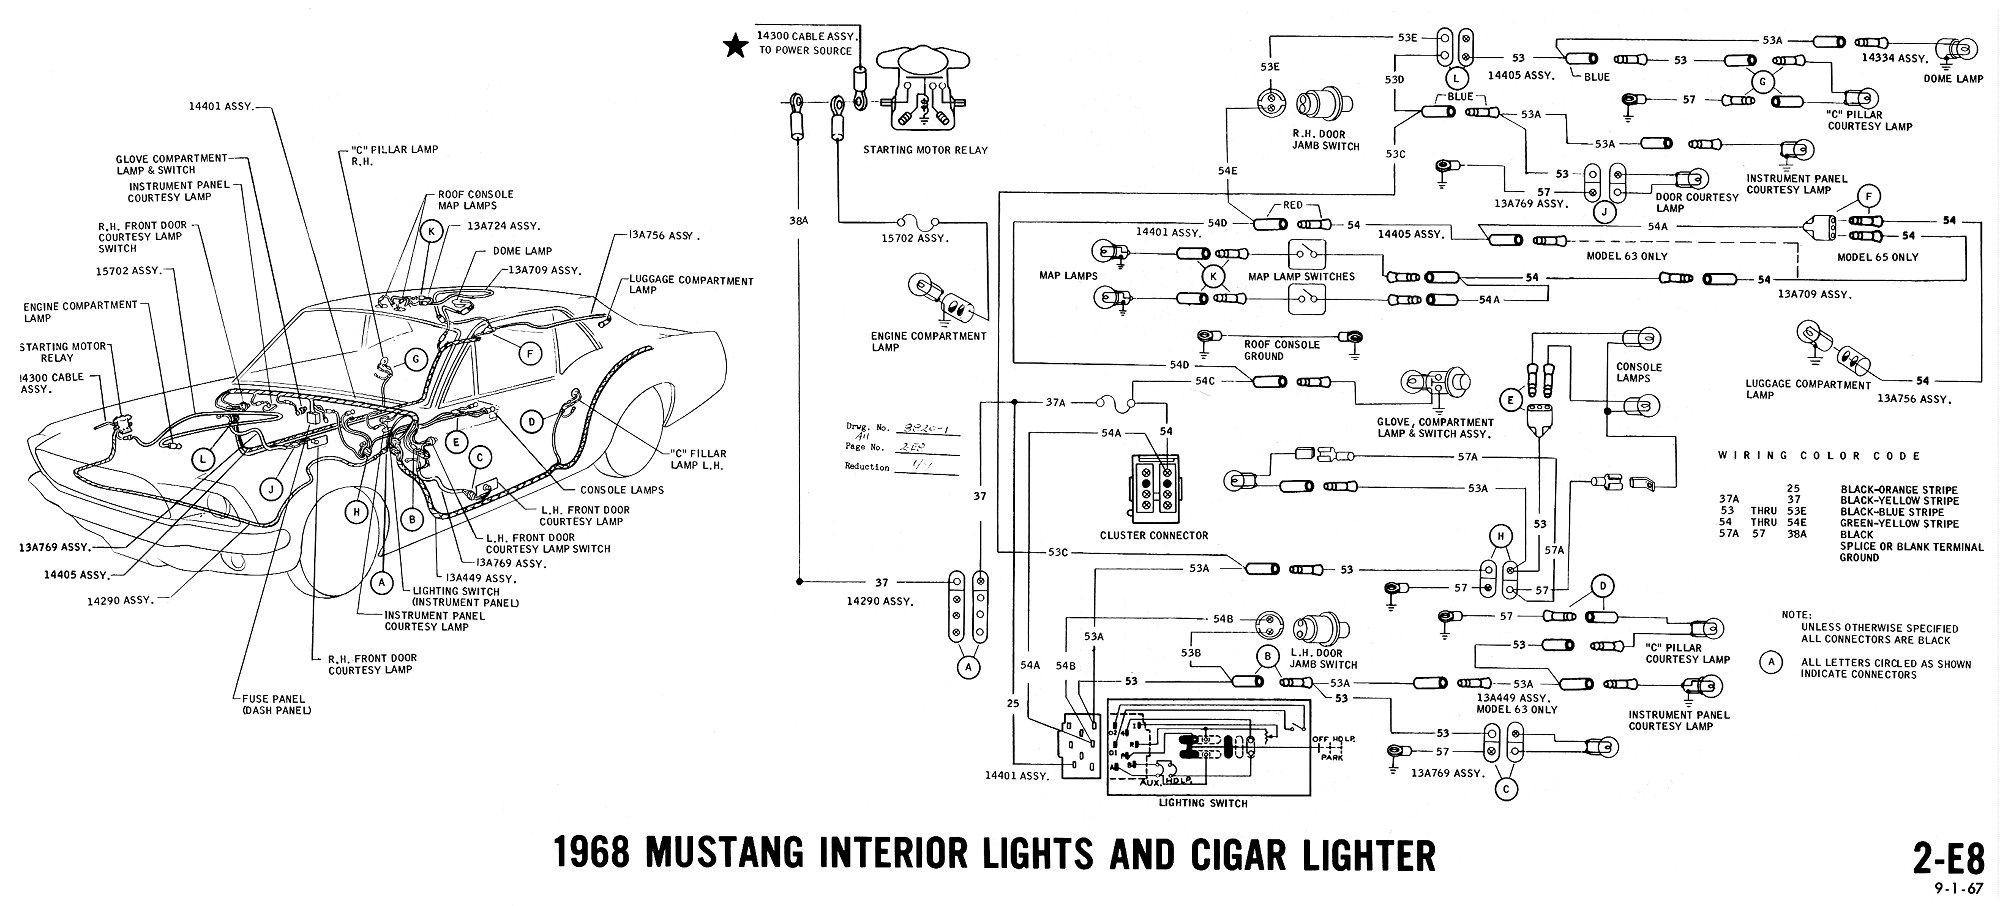 1970 Mustang Wiring Diagram Pdf Layout Diagrams 1969 Charger Control U2022 Rh Pakistannews Co 1966